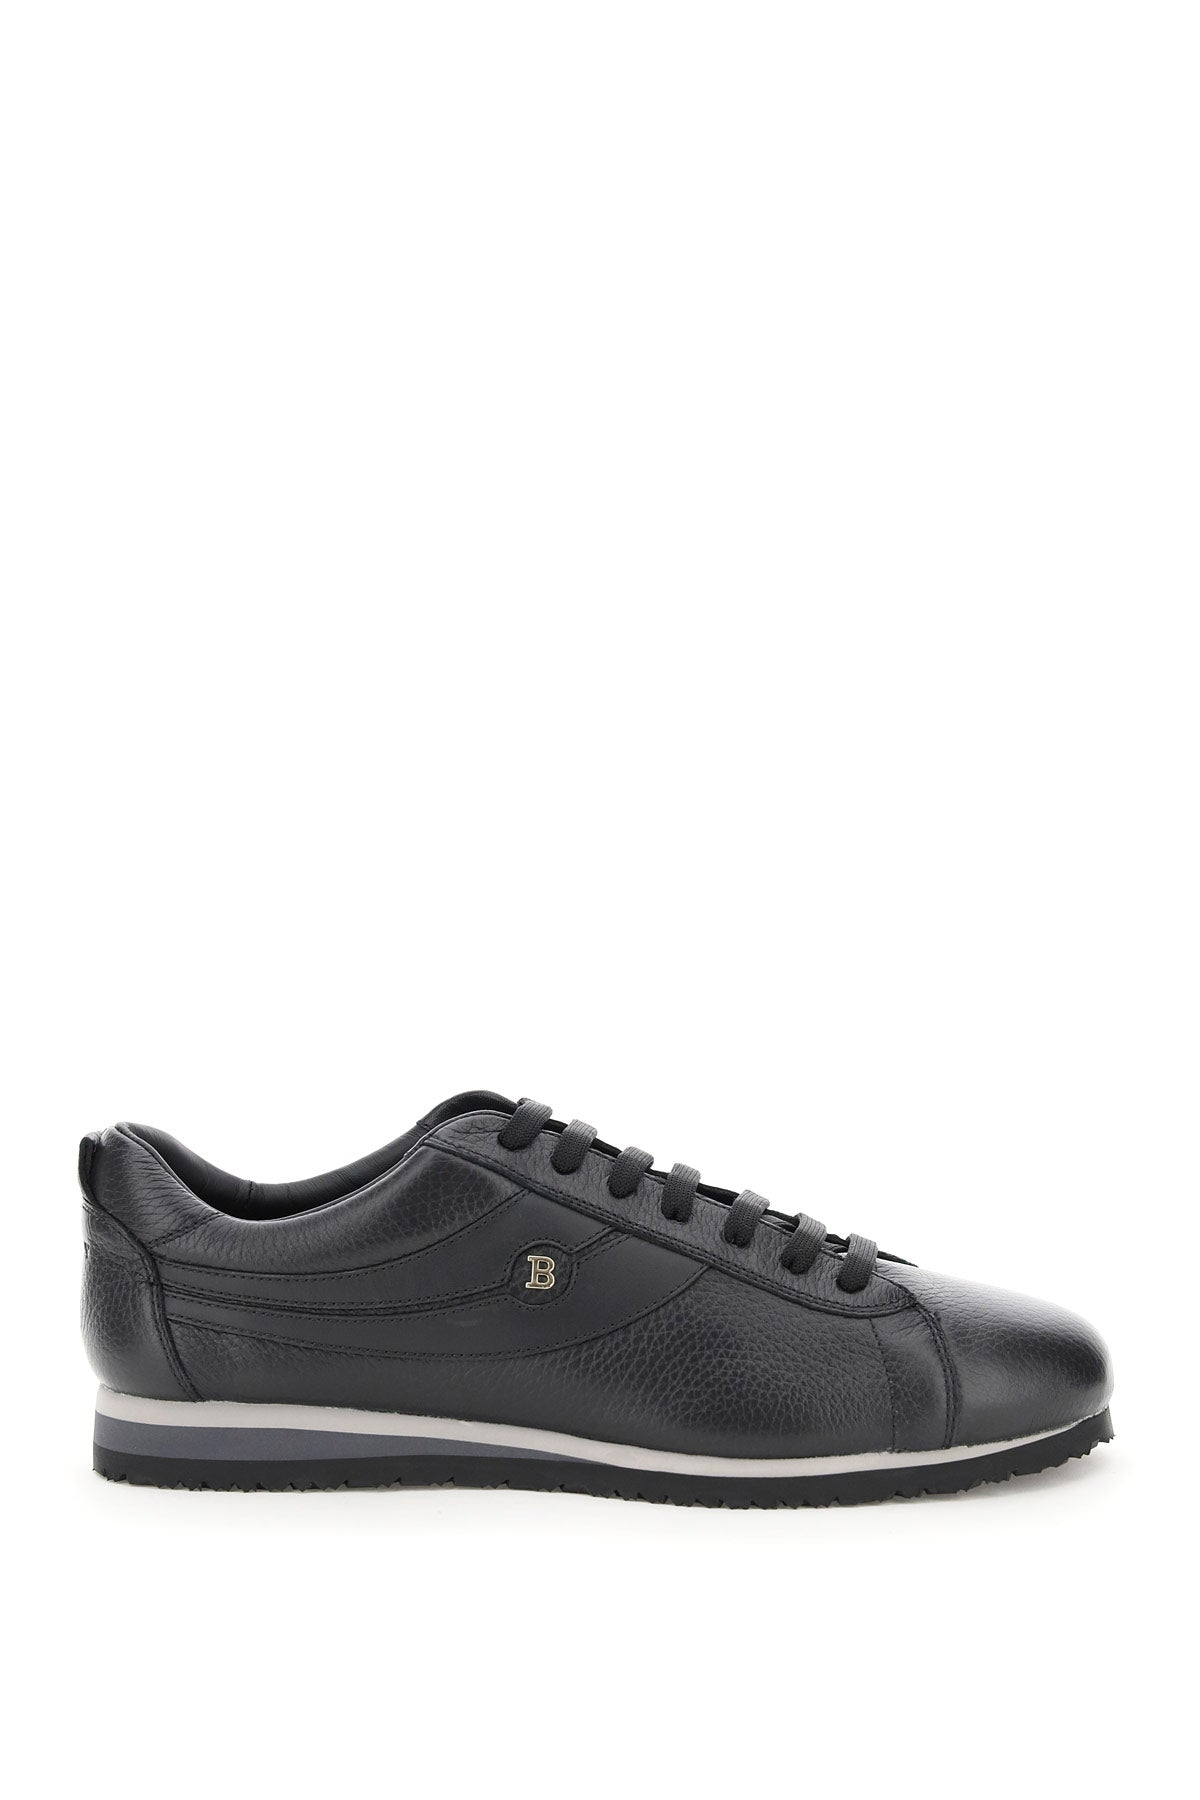 Bally Leathers BALLY BREDY SNEAKERS